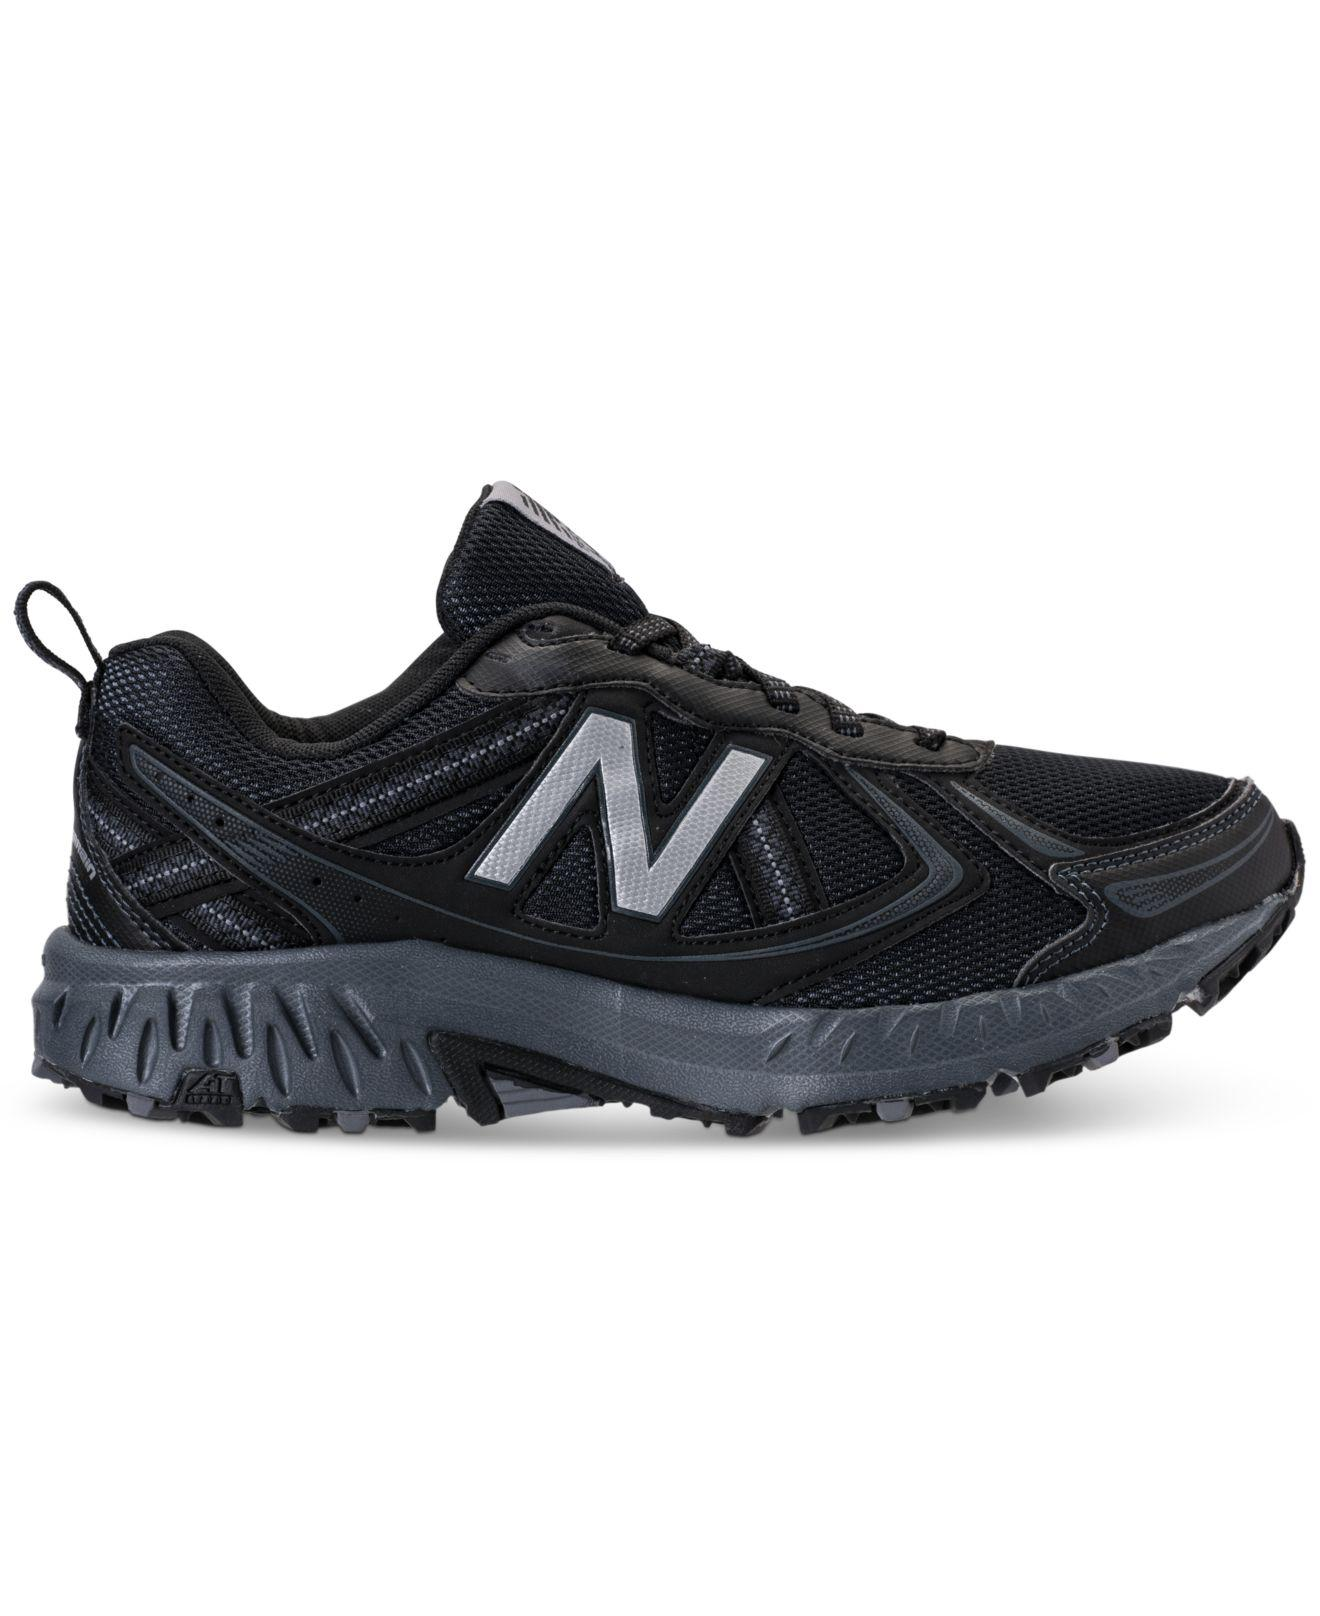 b0ead603a Lyst - New Balance Men s Mt410 V5 Wide Running Sneakers From Finish Line in  Black for Men